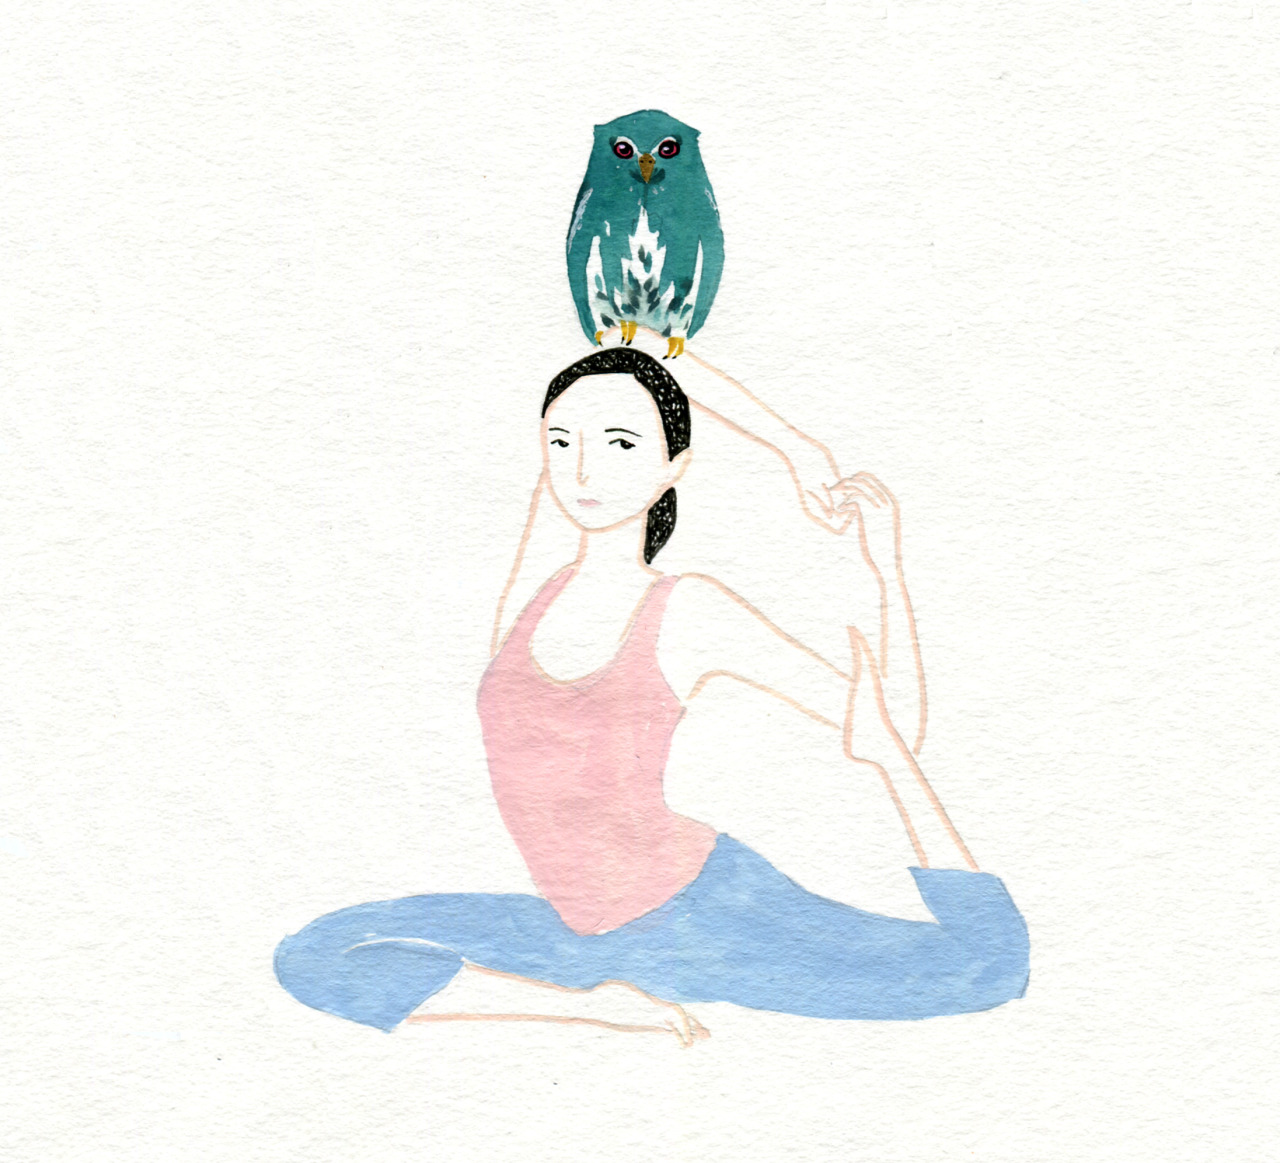 hand drawn yoga pose with owl